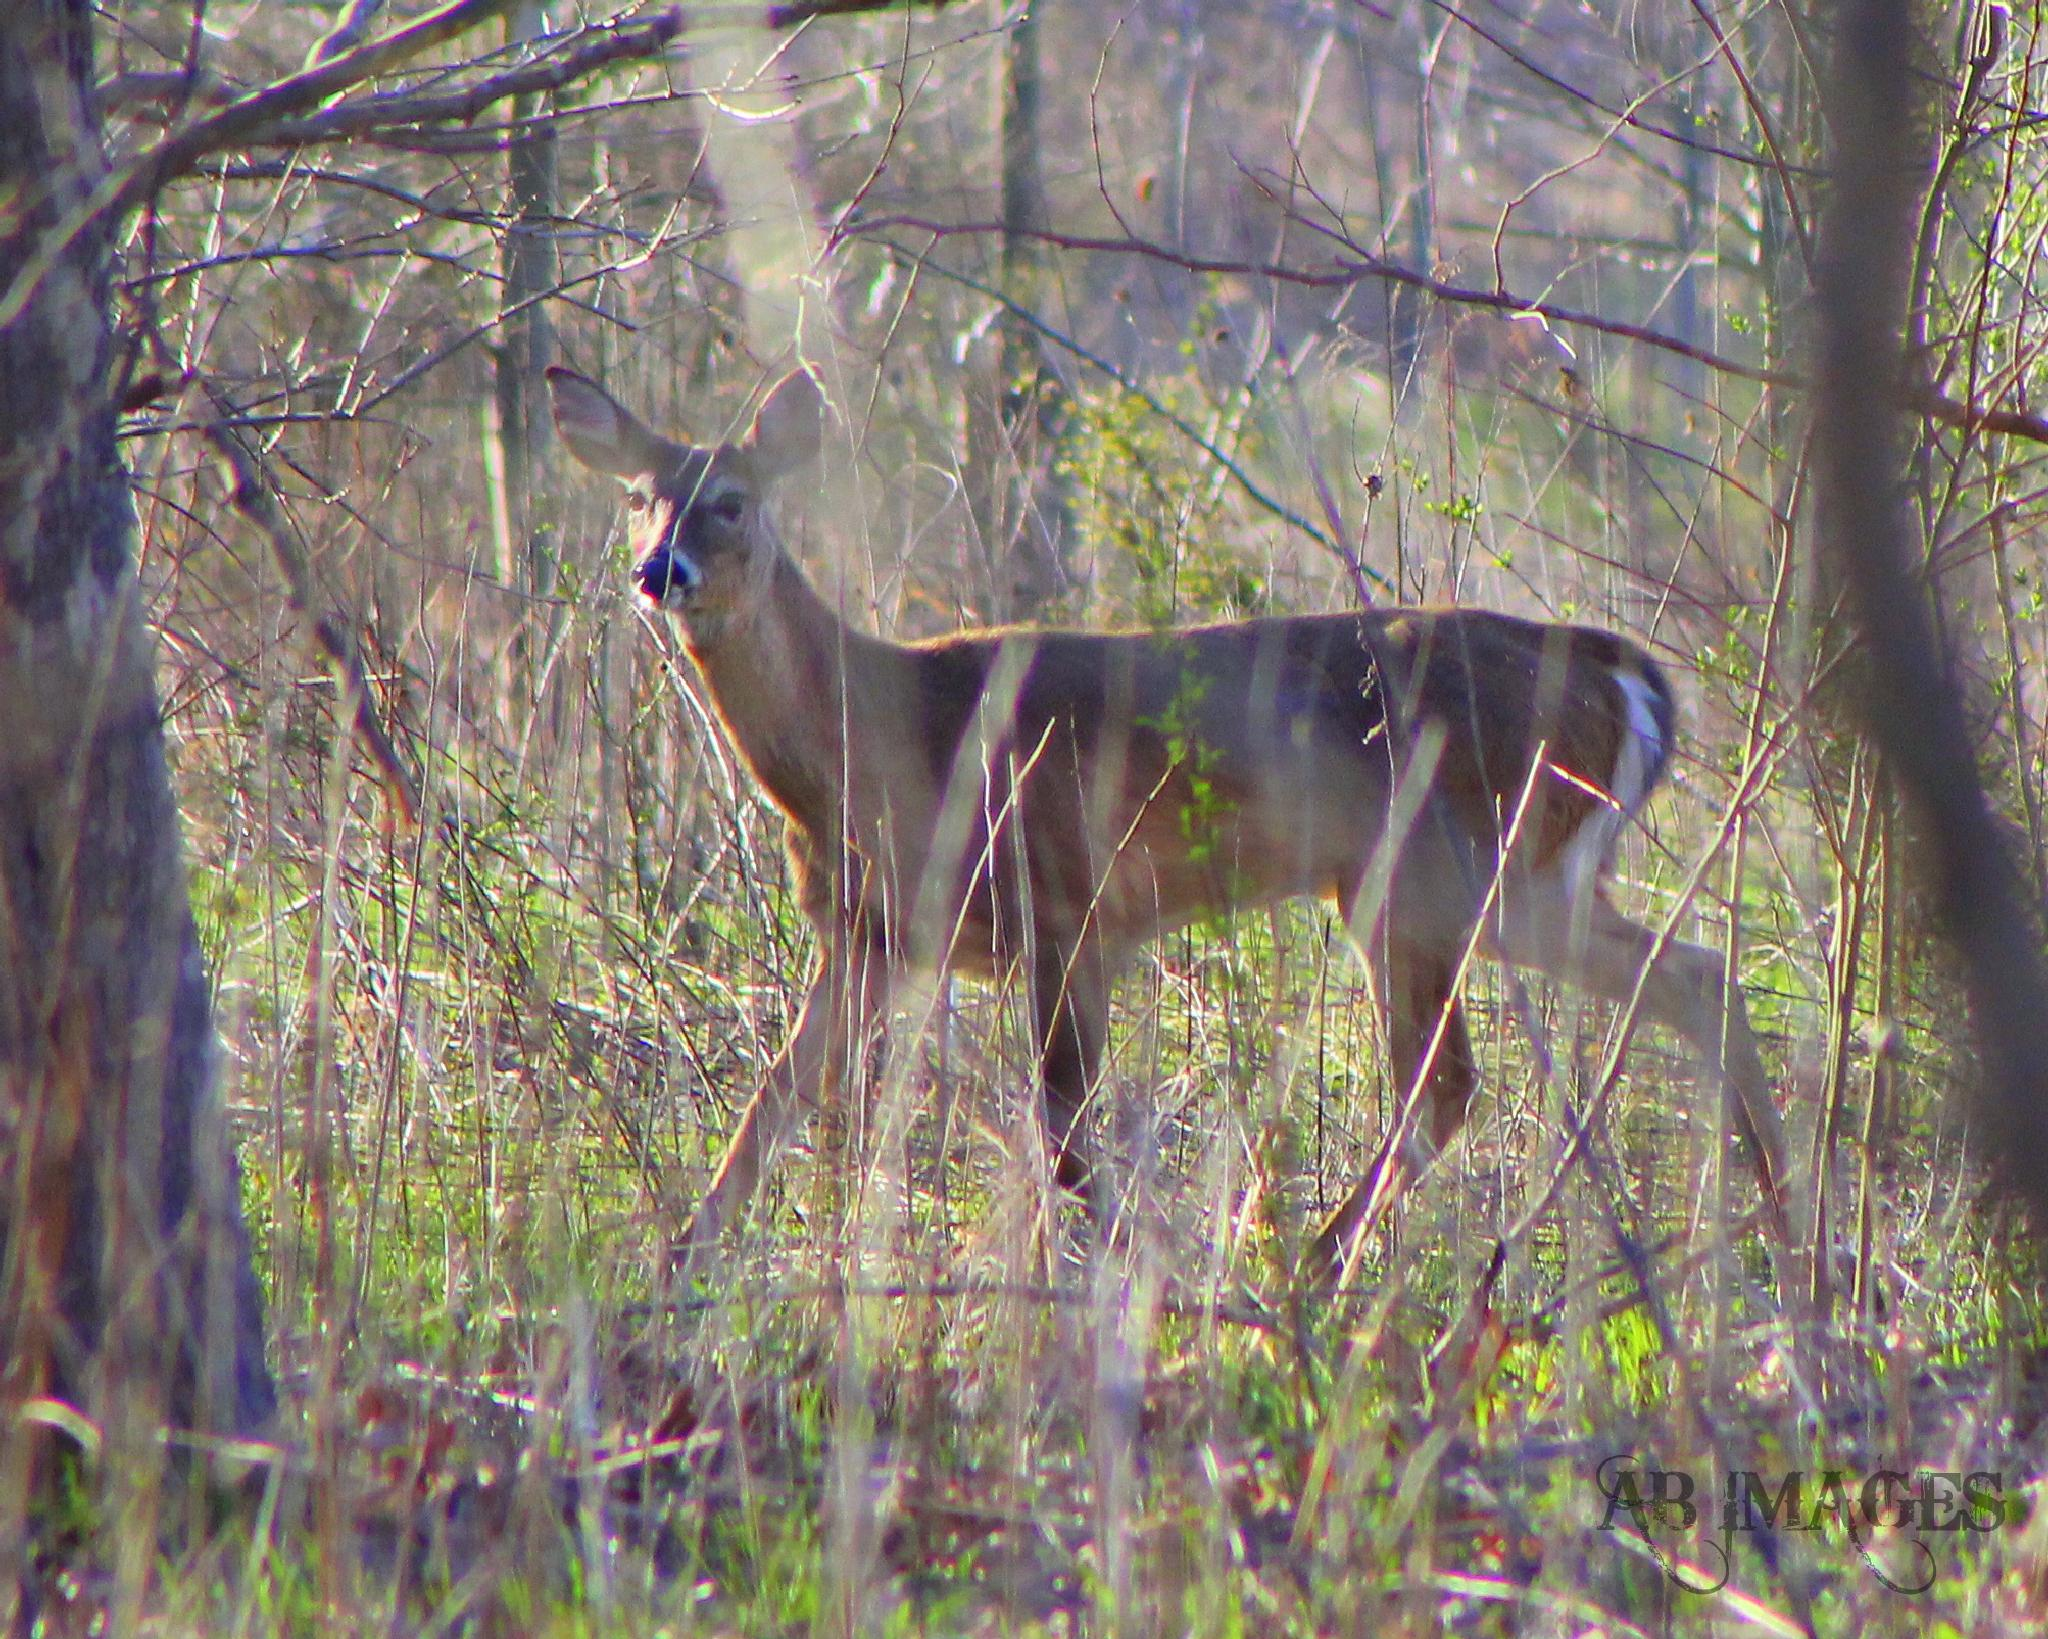 White Tailed Deer by GypsyRose